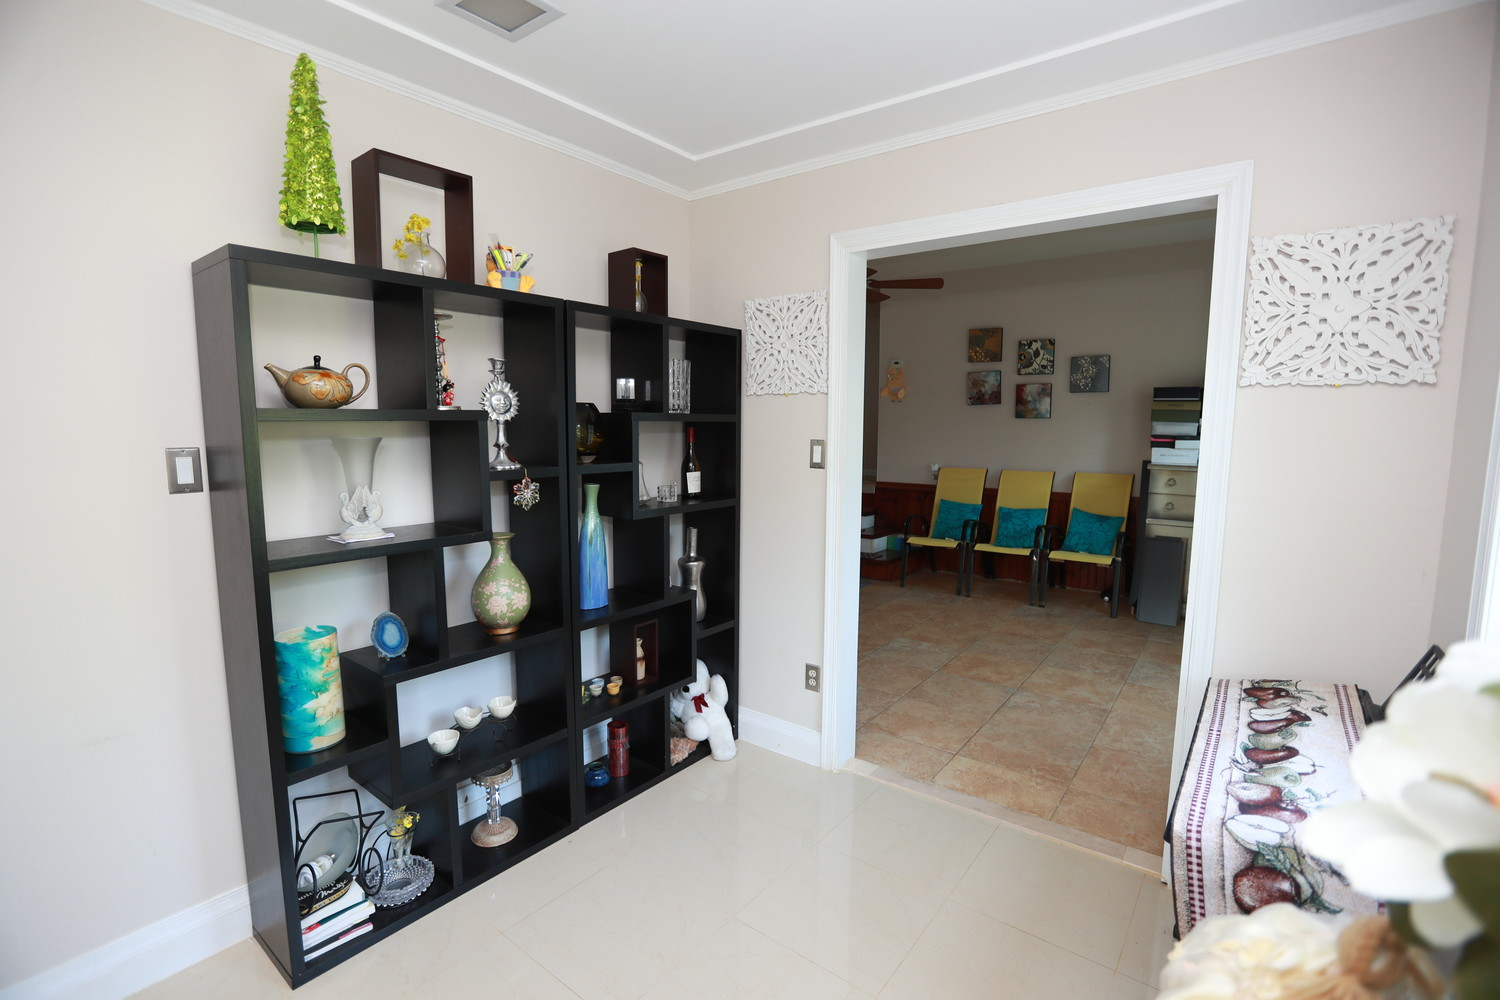 All Bills Inclusive Room and Common Areas in a House